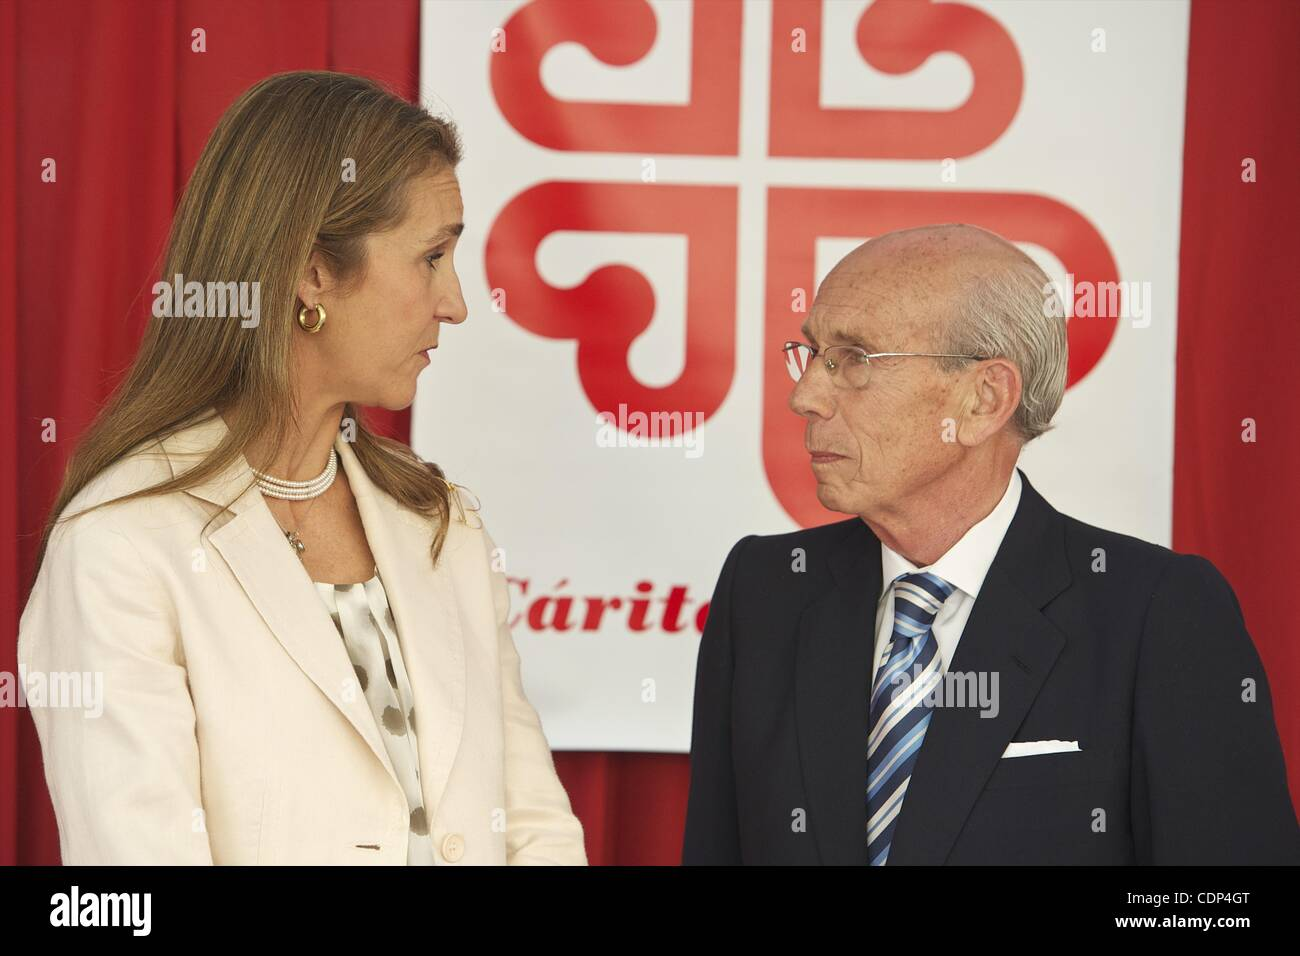 June 21, 2011 - Madrid, Spain - Princess Elena of Spain attends 'Caritas Charity Day' at the Banco Popular - Stock Image